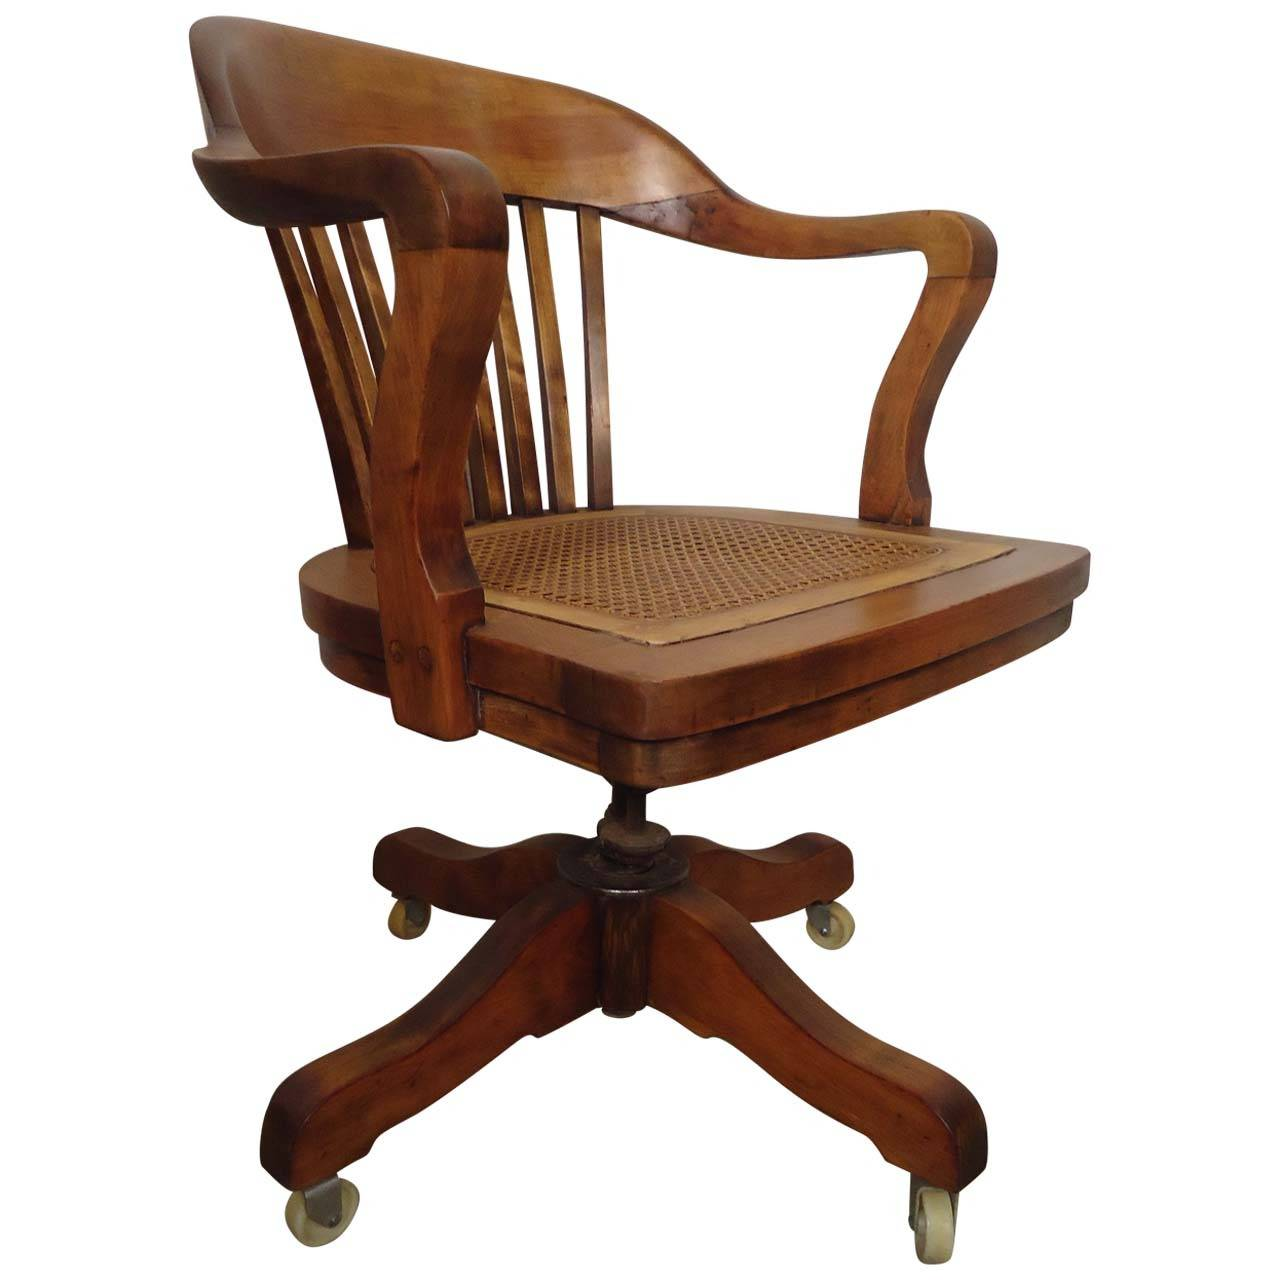 Swivel Desk Chairs Restored Vintage Swivel Desk Chair By Page At 1stdibs